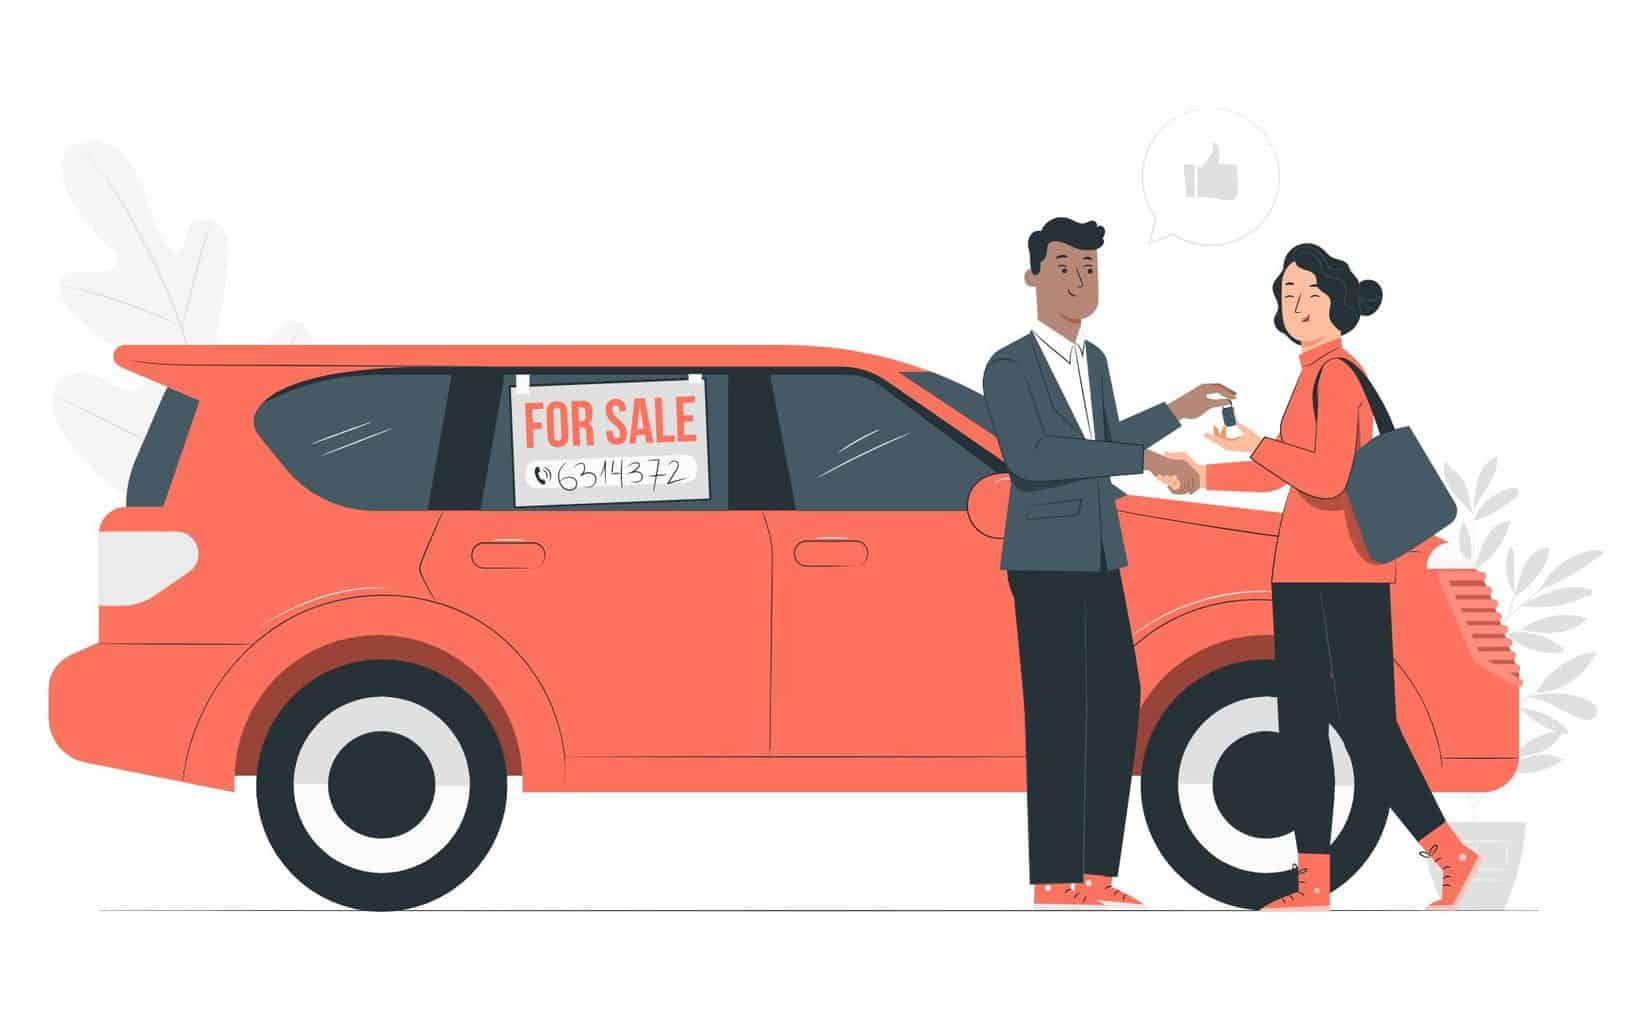 make smart vehicle decisions so you can be debt free